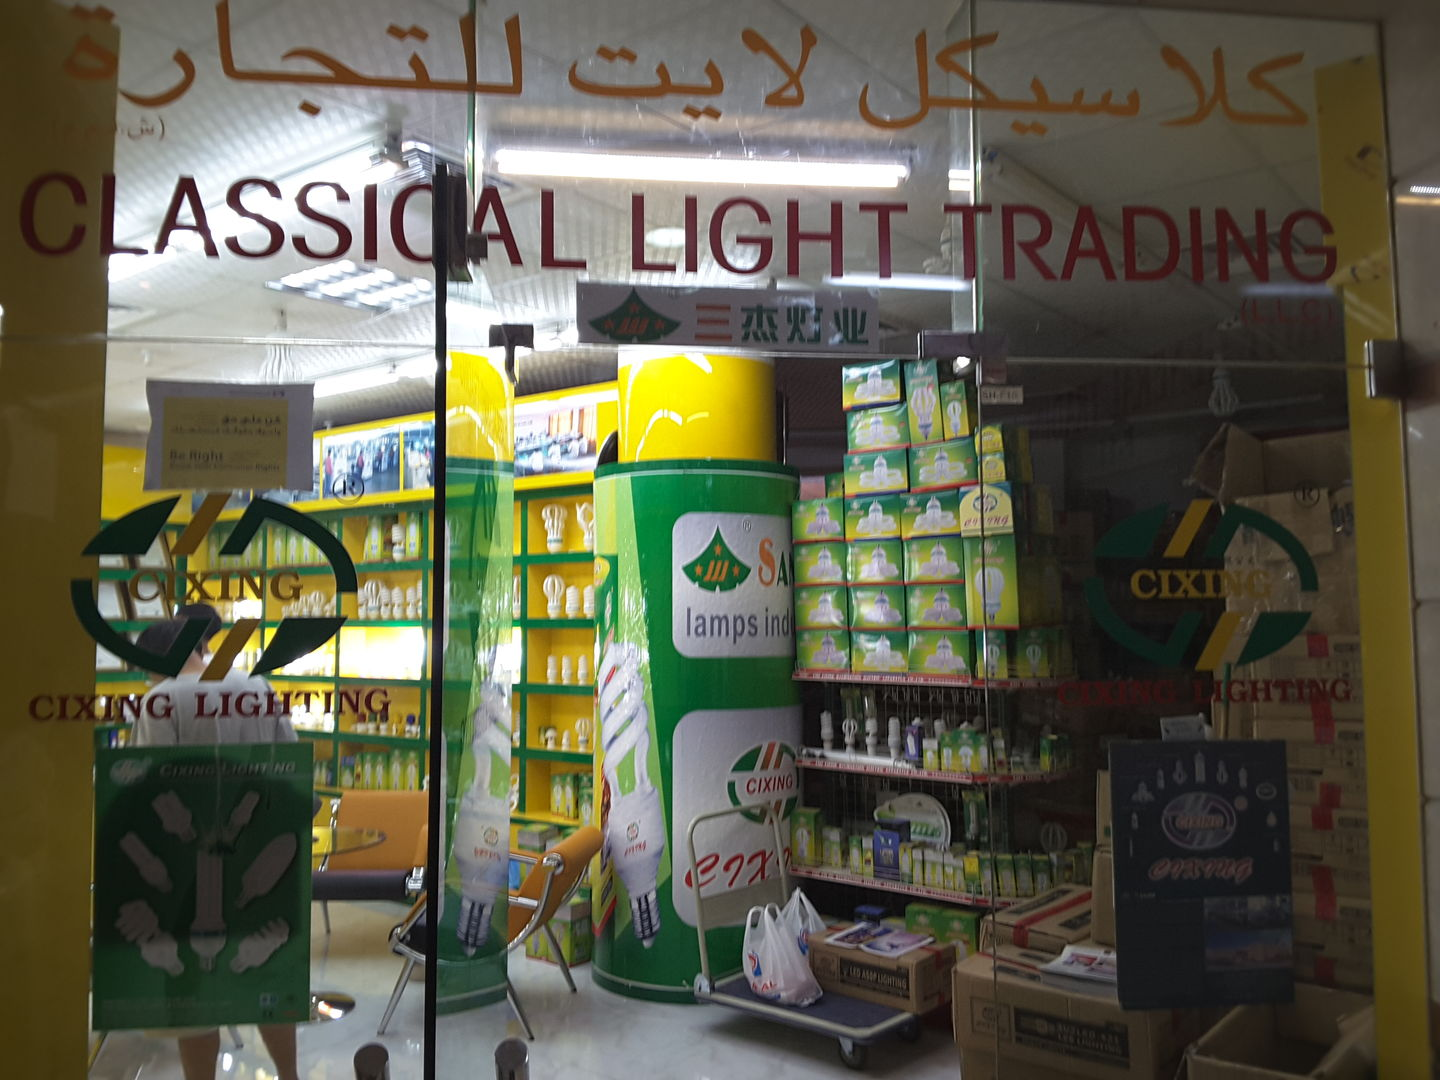 HiDubai-business-classical-light-trading-b2b-services-distributors-wholesalers-baniyas-square-dubai-2